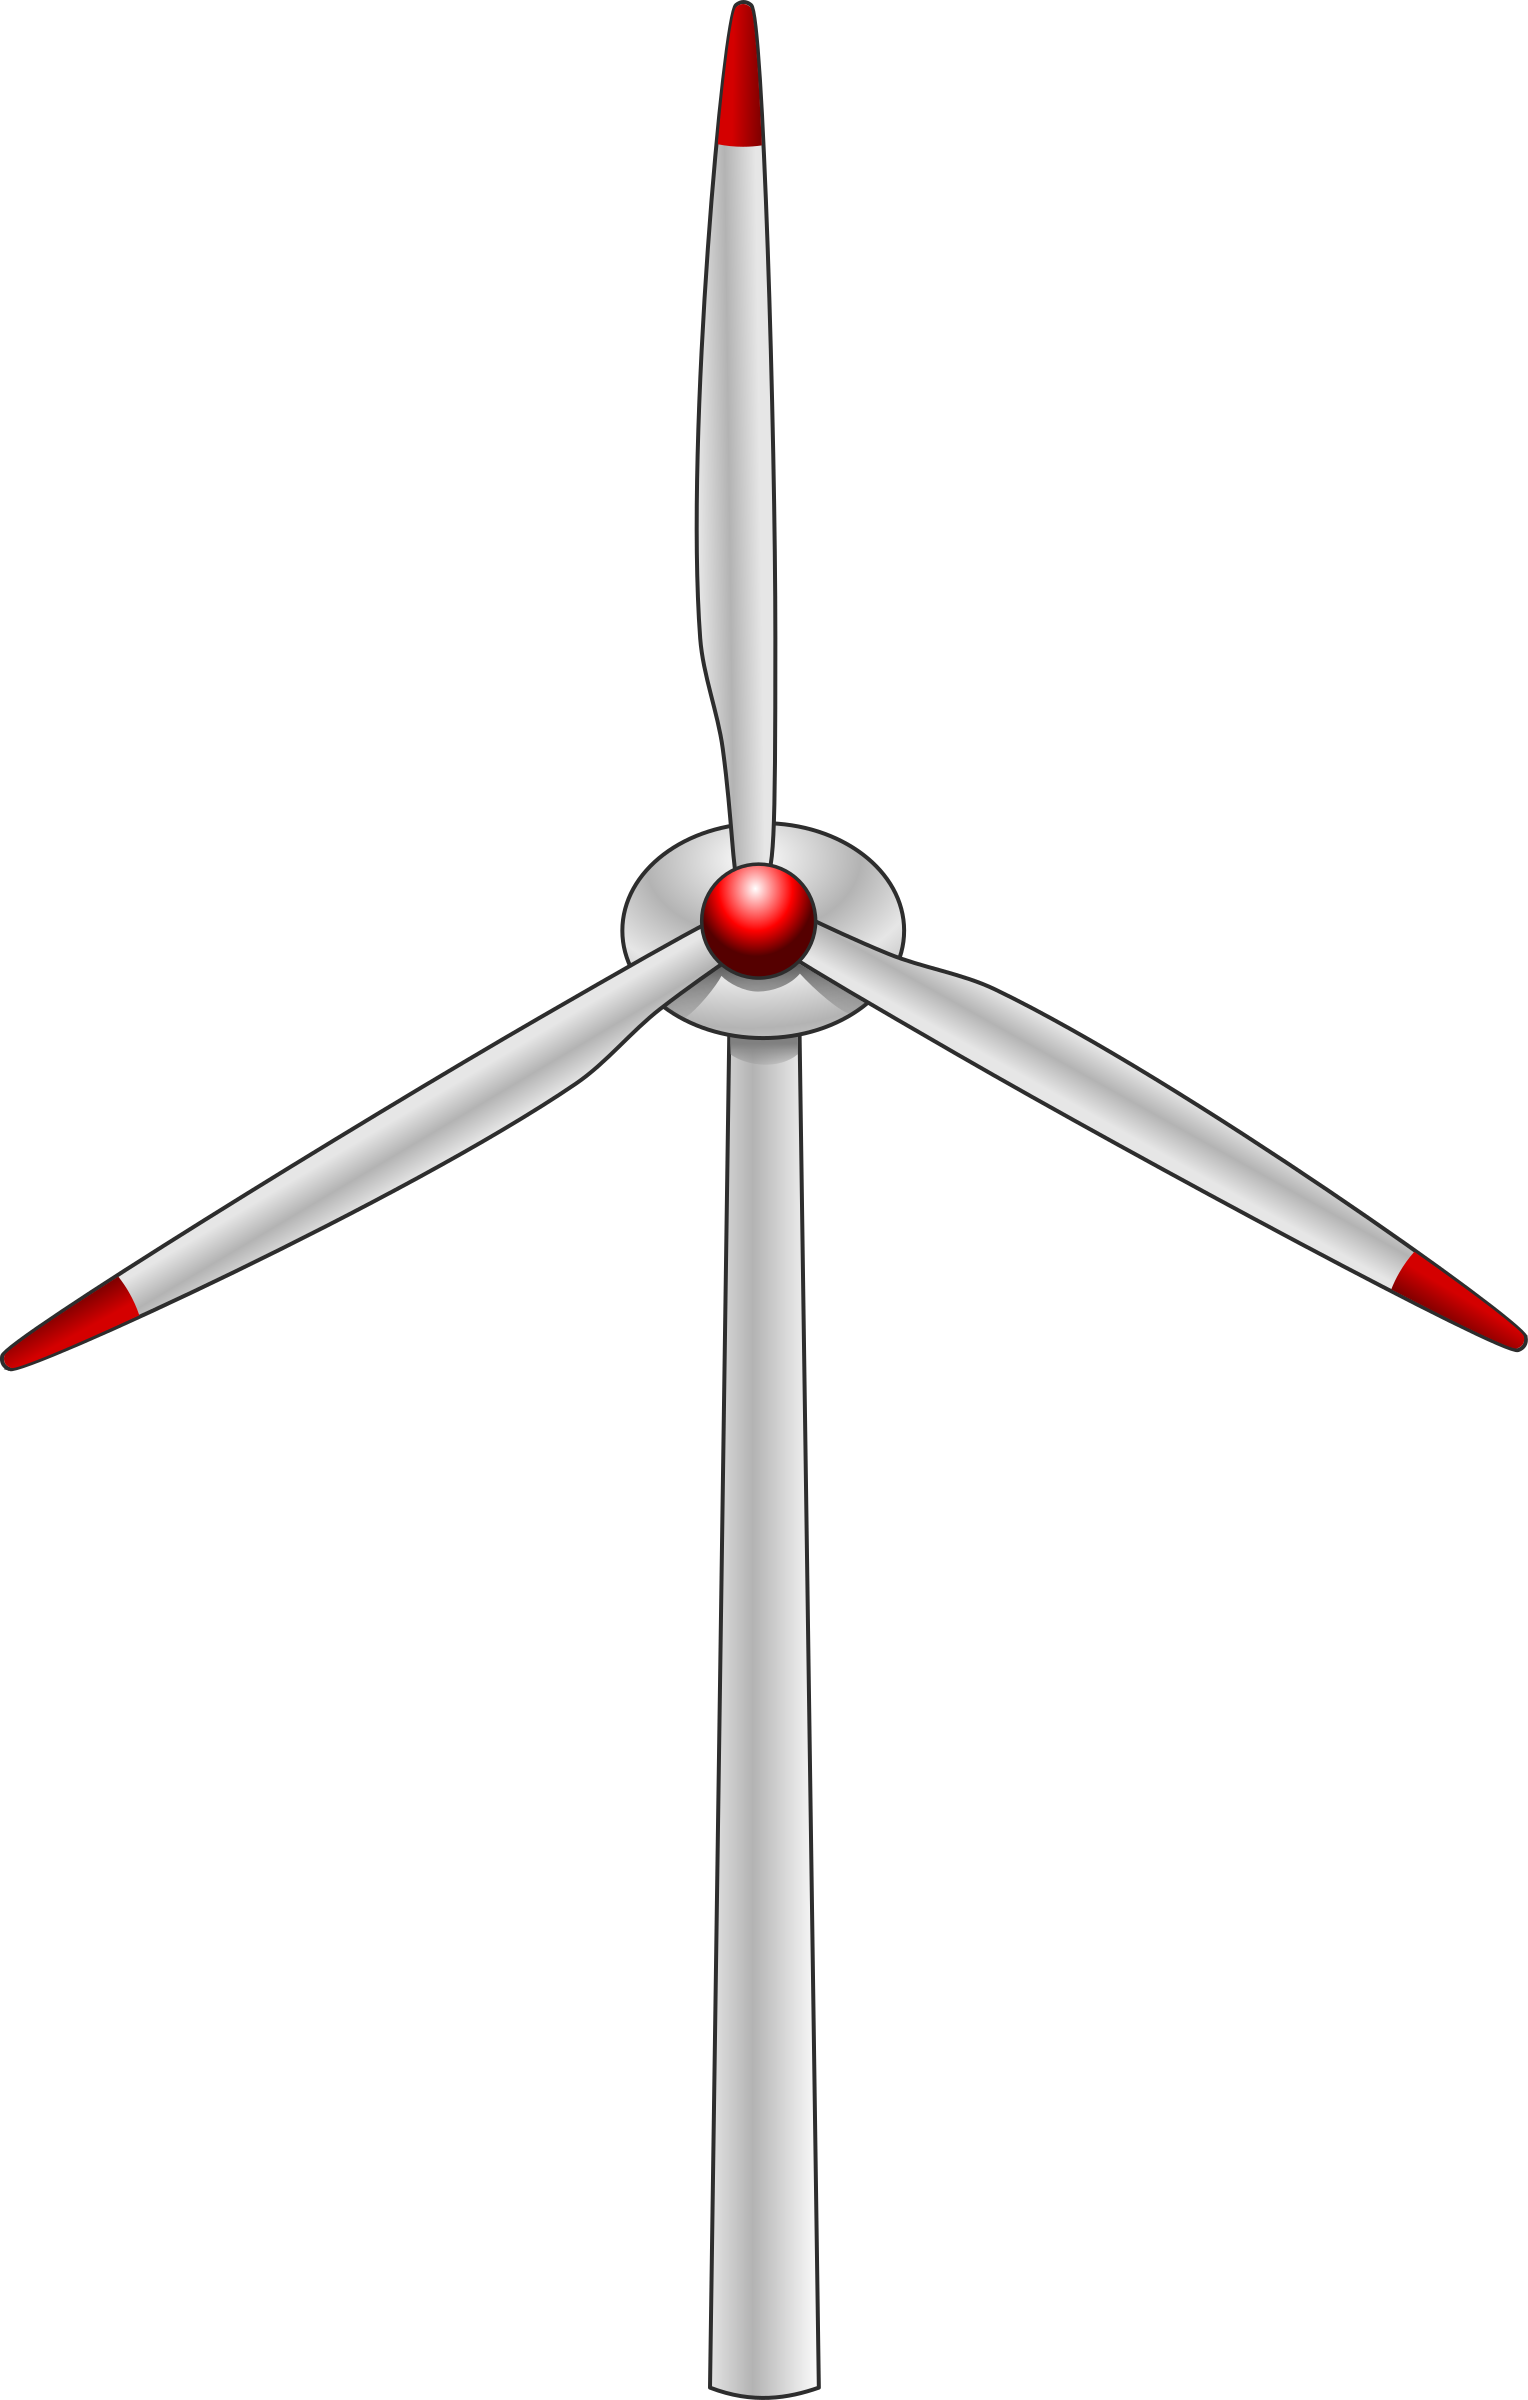 wind turbine by Chrisdesign